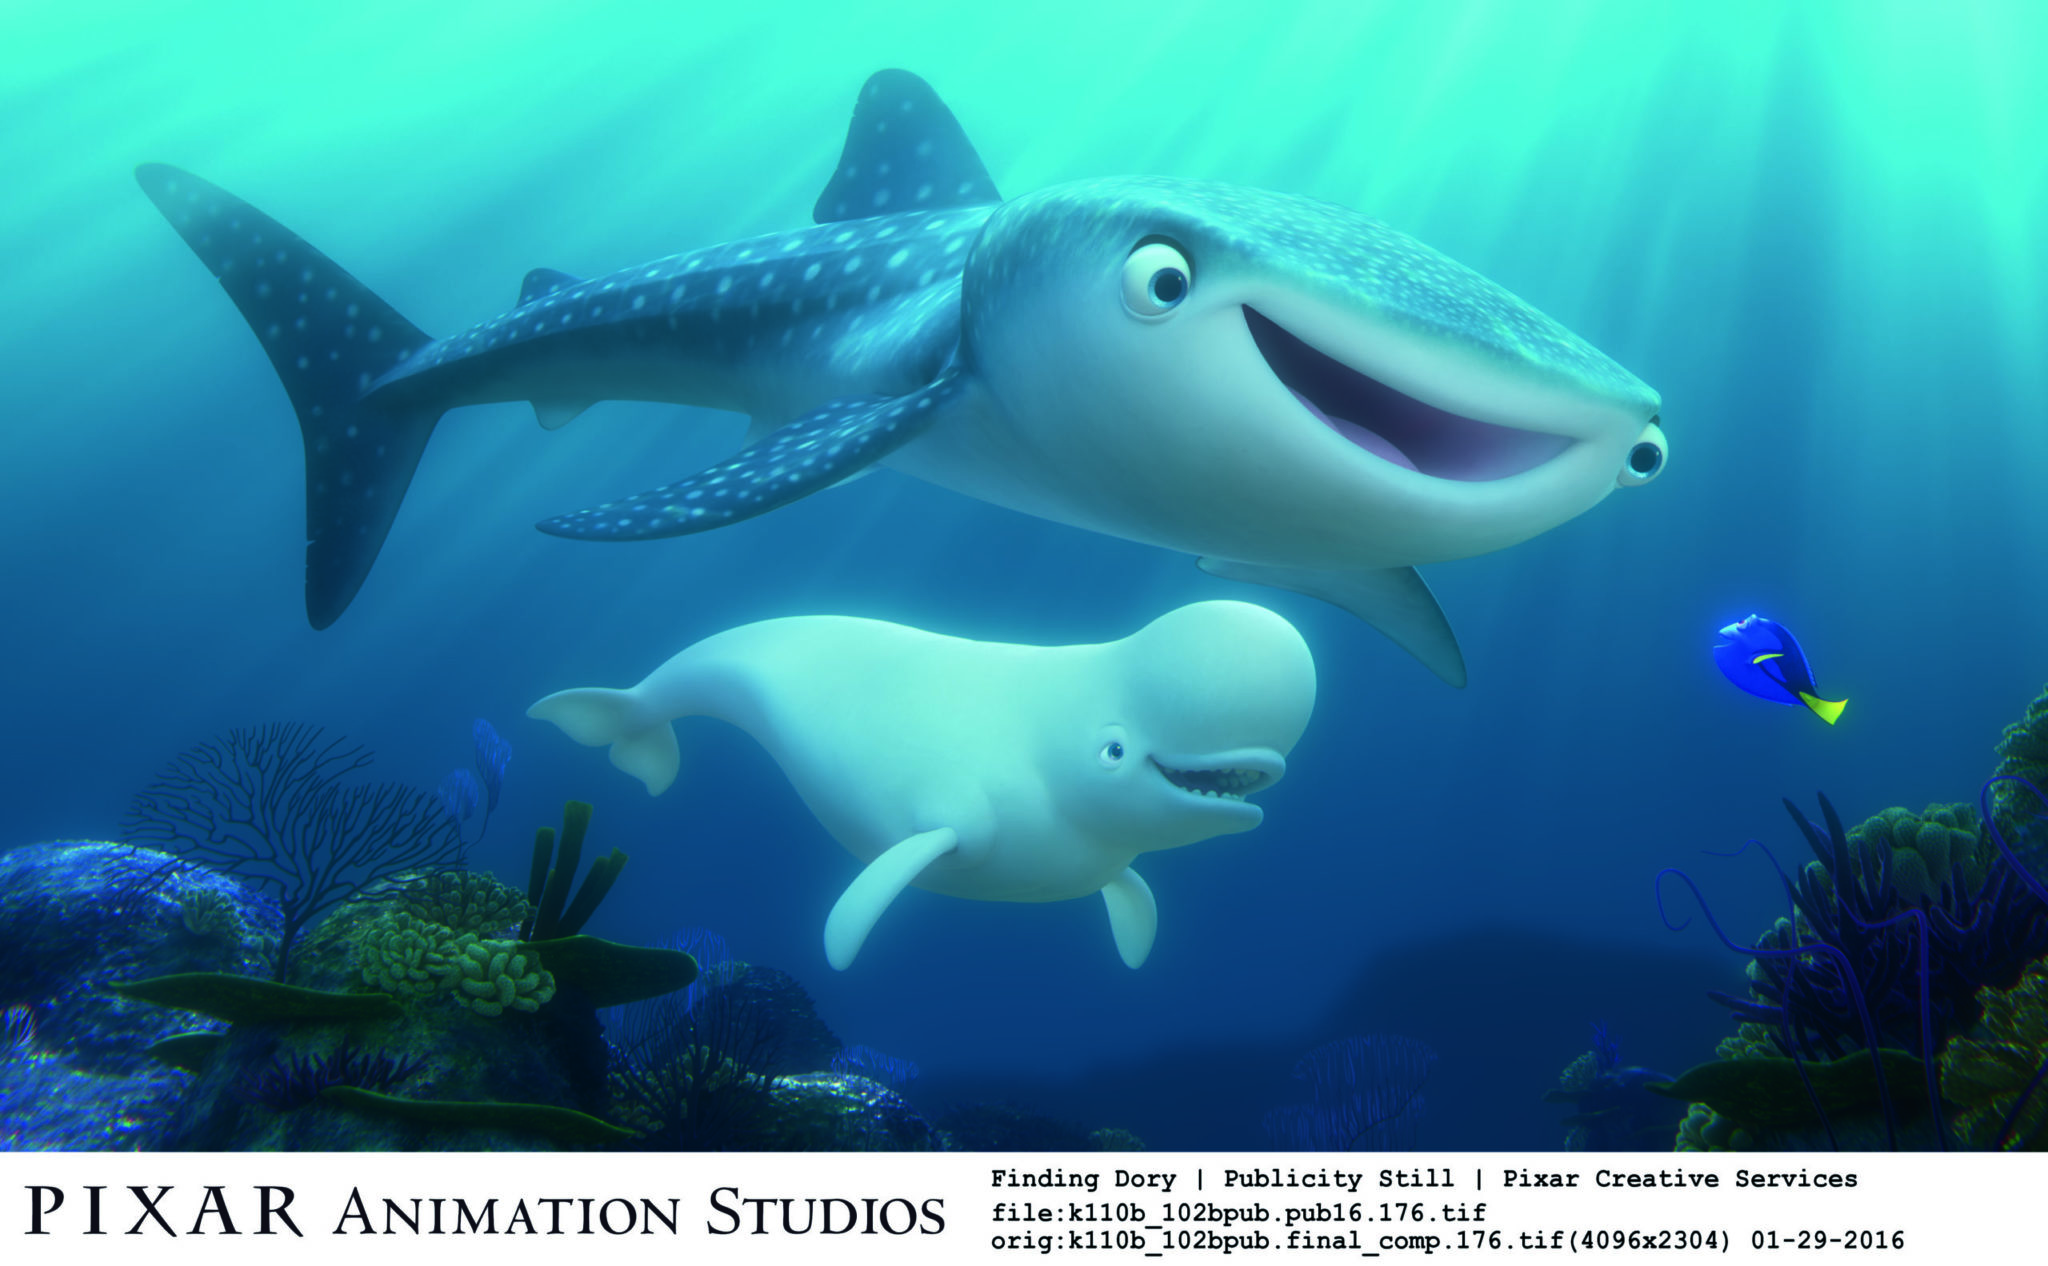 """""""Finding Dory"""" introduces new characters to the big screen, including a whale shark named Destiny who's nearsighted, and a beluga whale named Bailey who thinks his biological sonar skills are on the fritz. Featuring Kaitlin Olson as the voice of Destiny and Ty Burrell as the voice of Bailey, """"Finding Dory"""" opens on June 17, 2016. ©2016 Disney•Pixar. All Rights Reserved."""